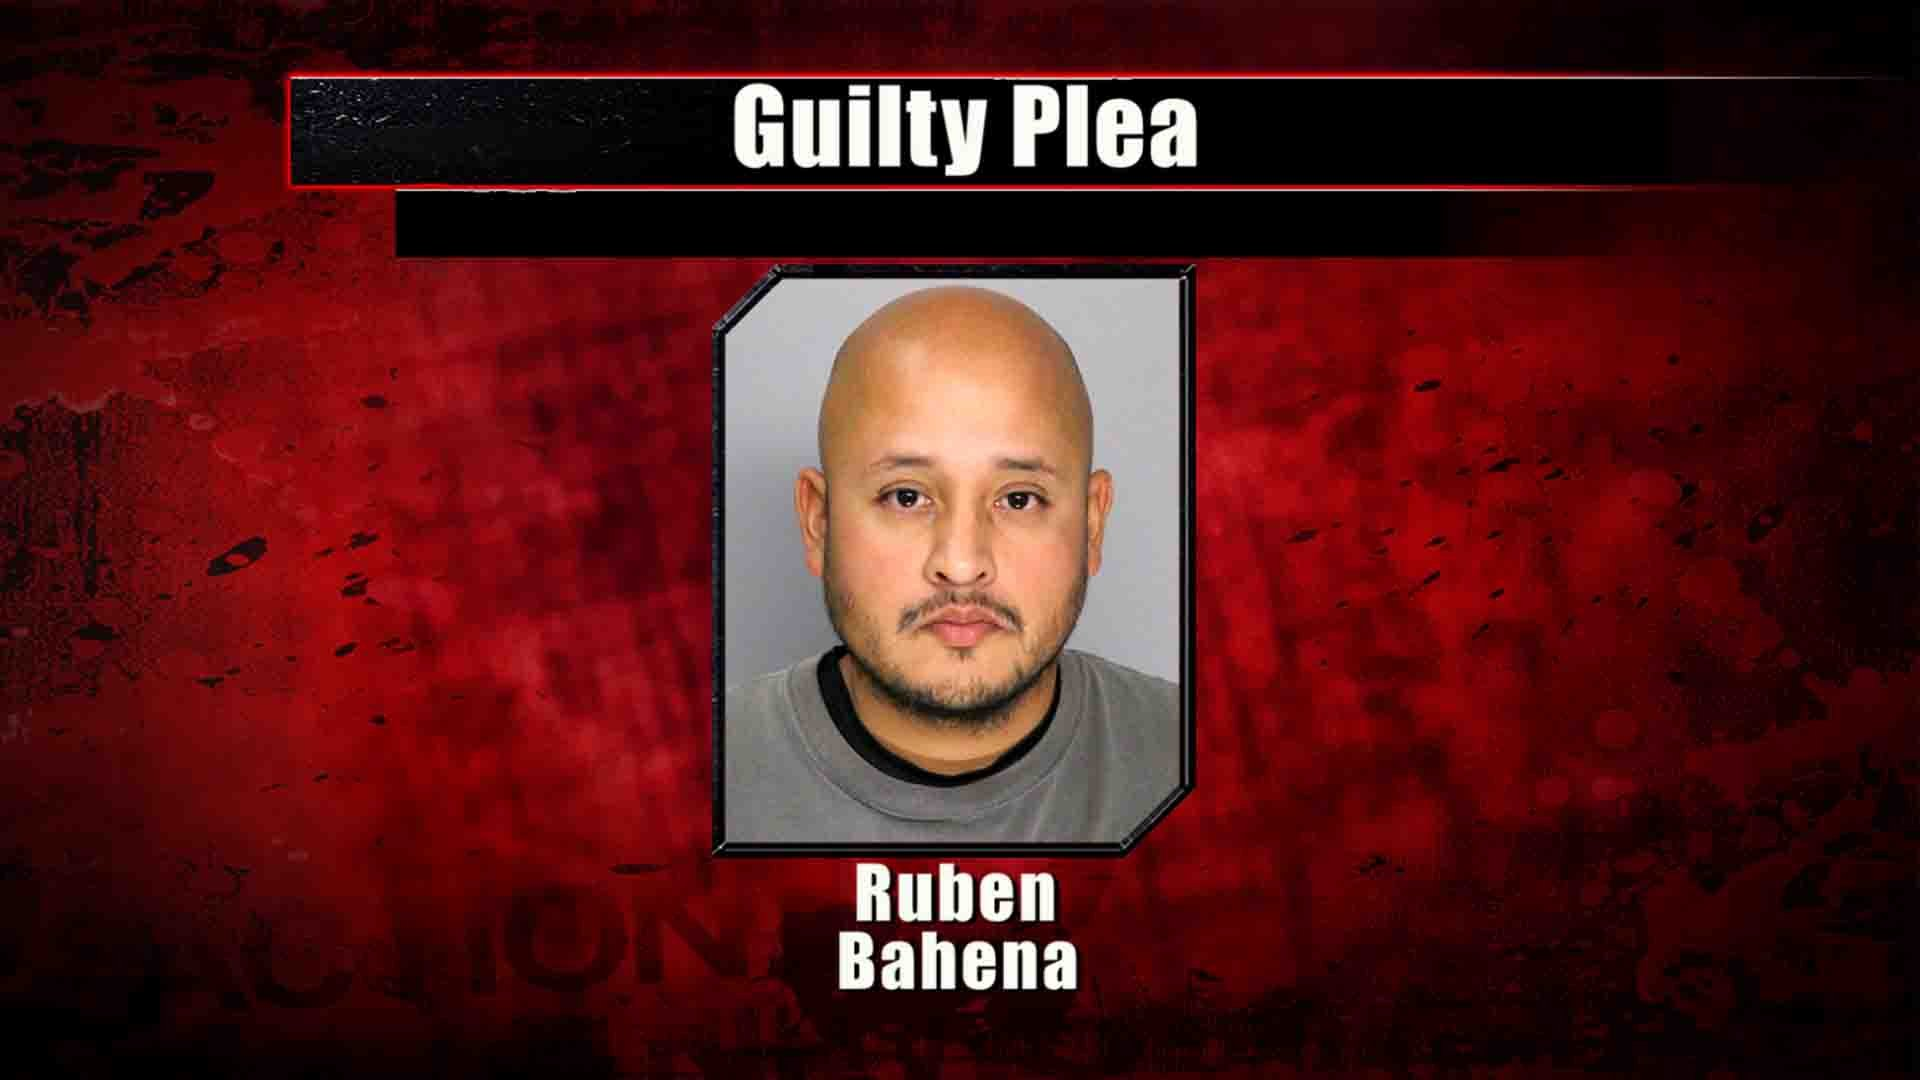 Ruben Bahena is sentenced to 8 years in prison after guilty plea